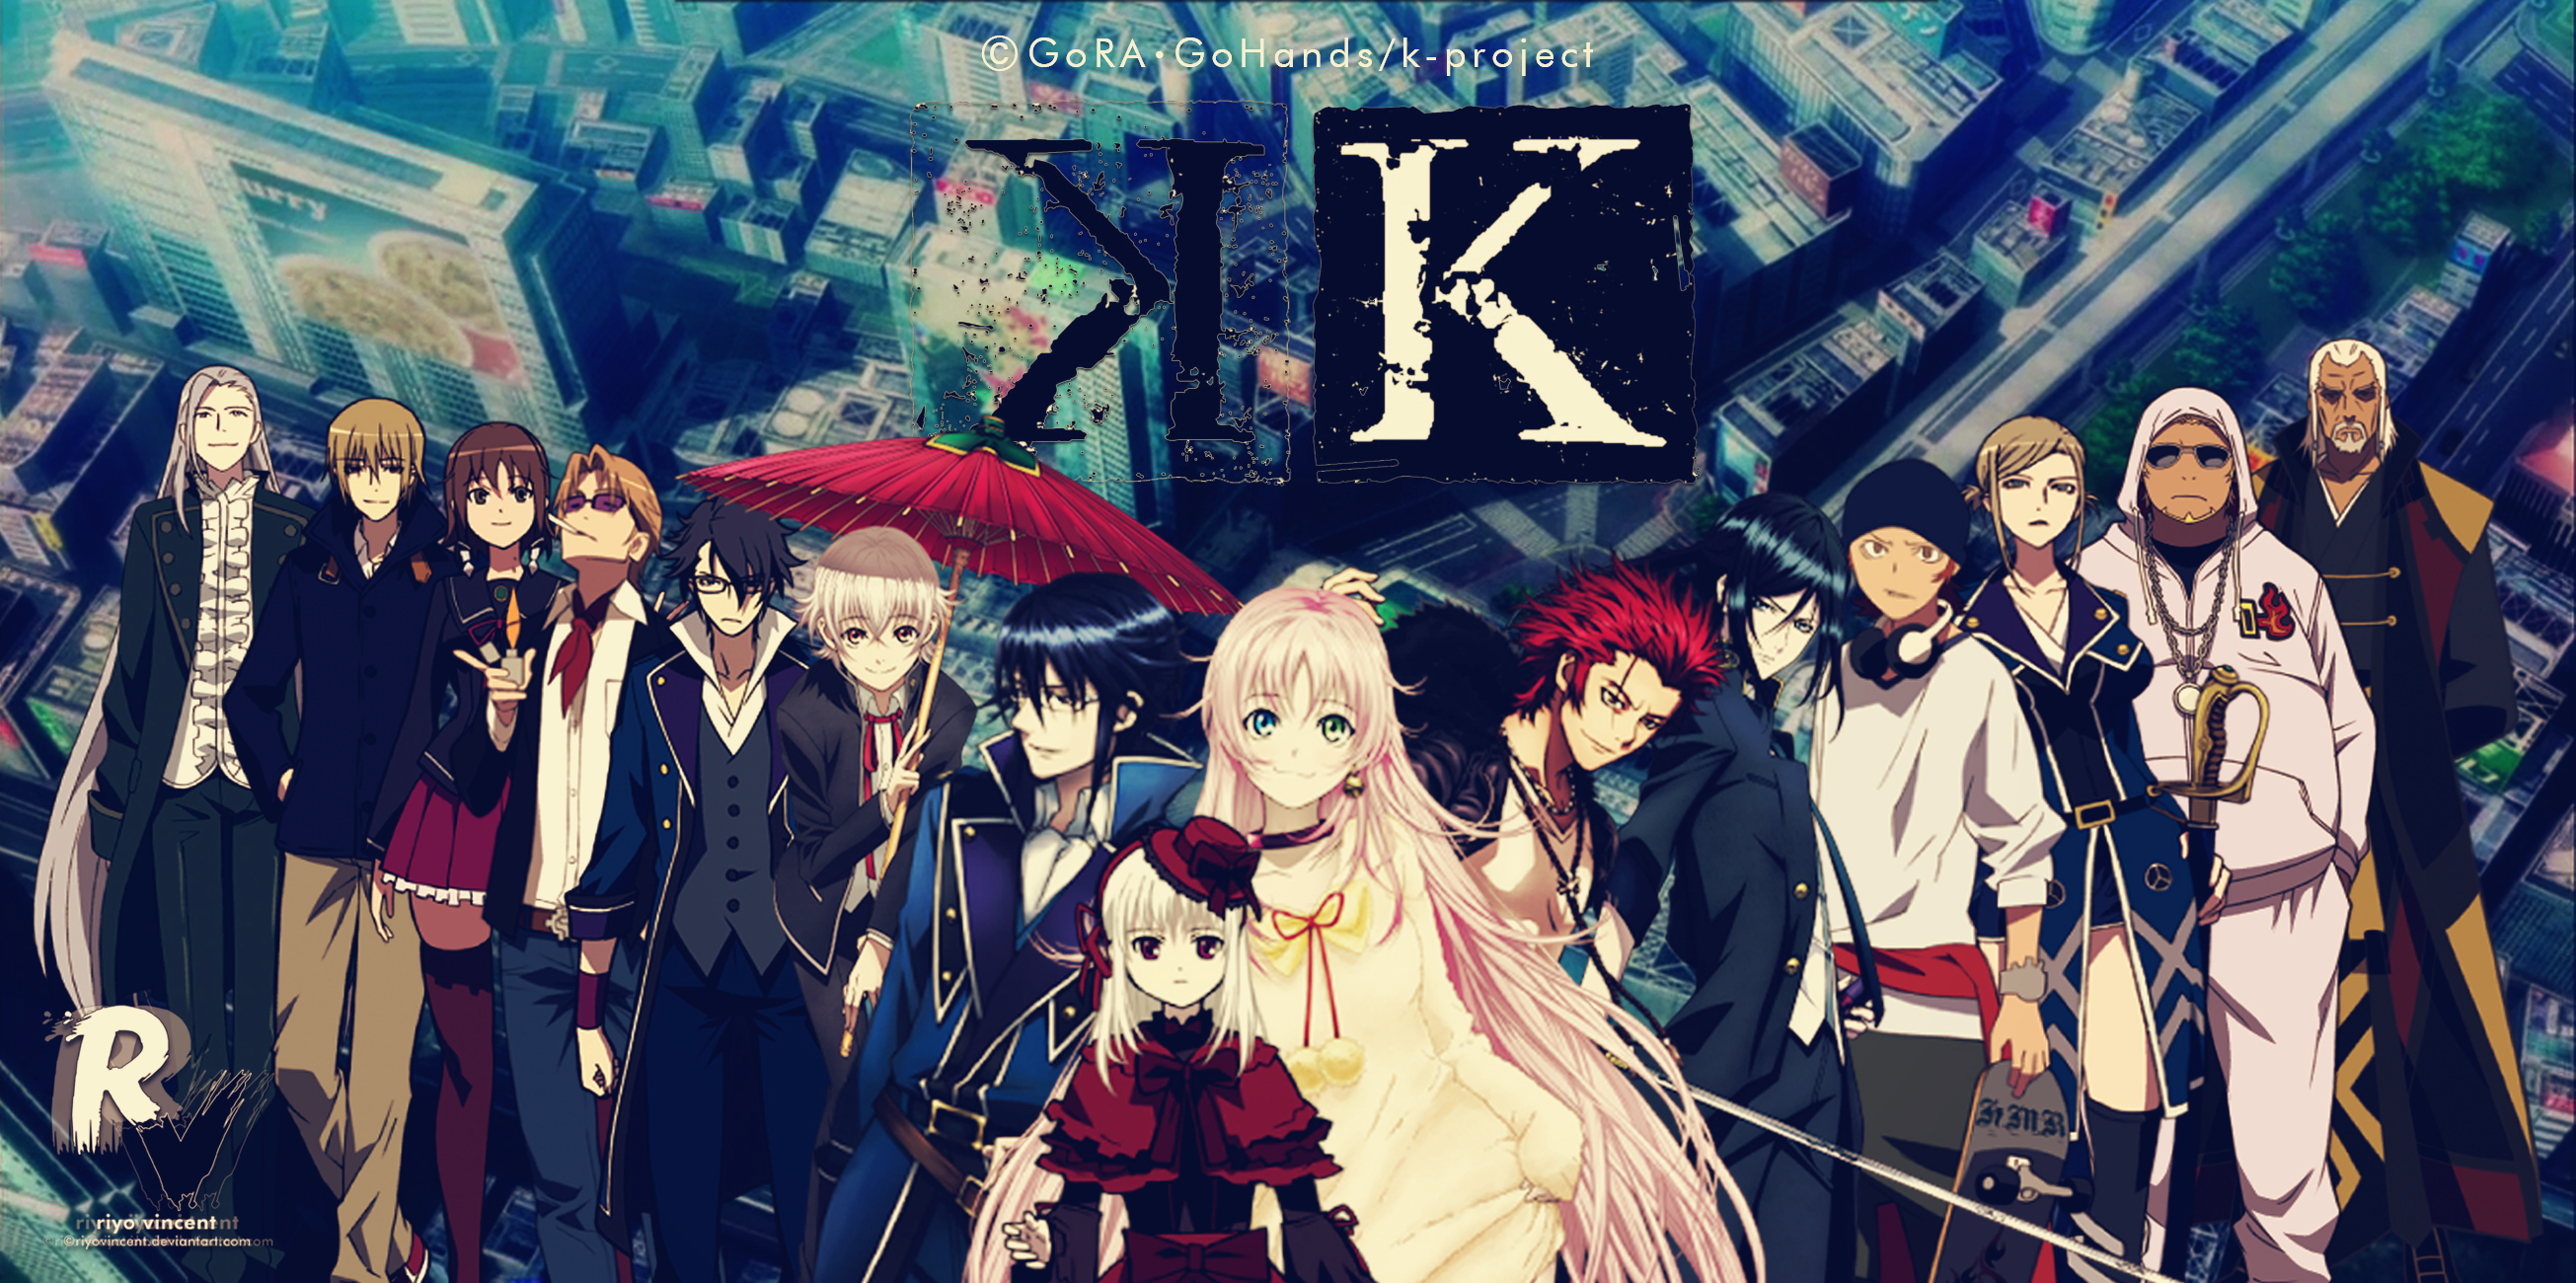 The Anime Kingdom Images K Project Hd Wallpaper And Background Photos